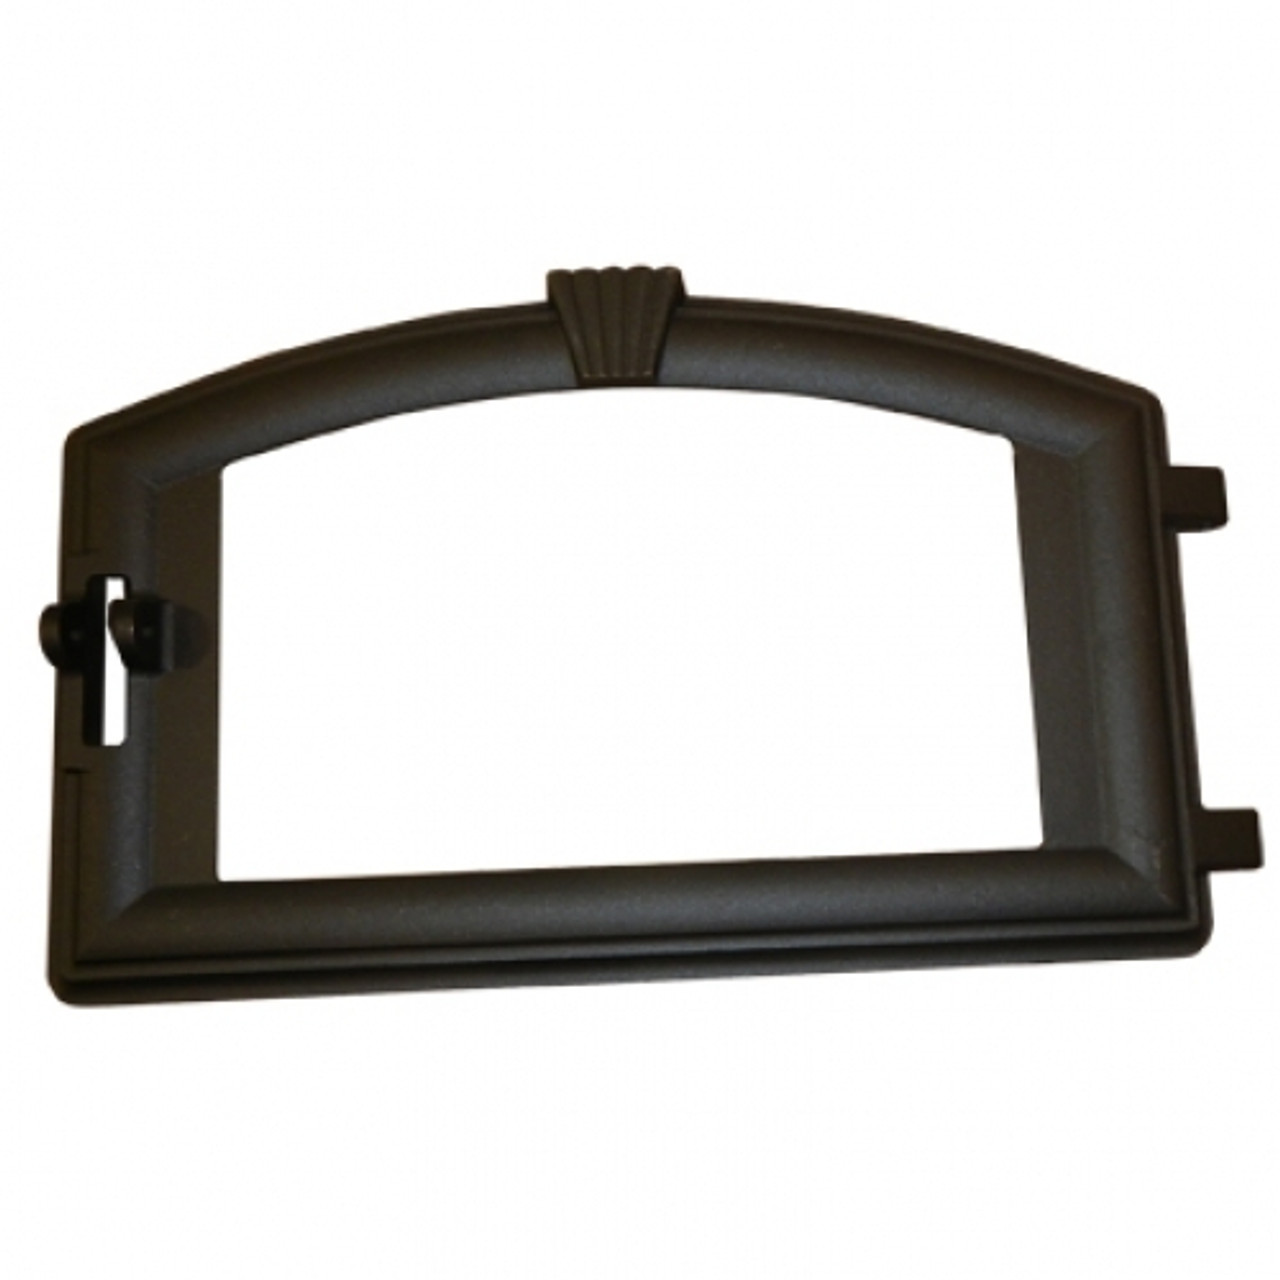 Replacement Door Frame For Us Stove Wood And Multi Fuel